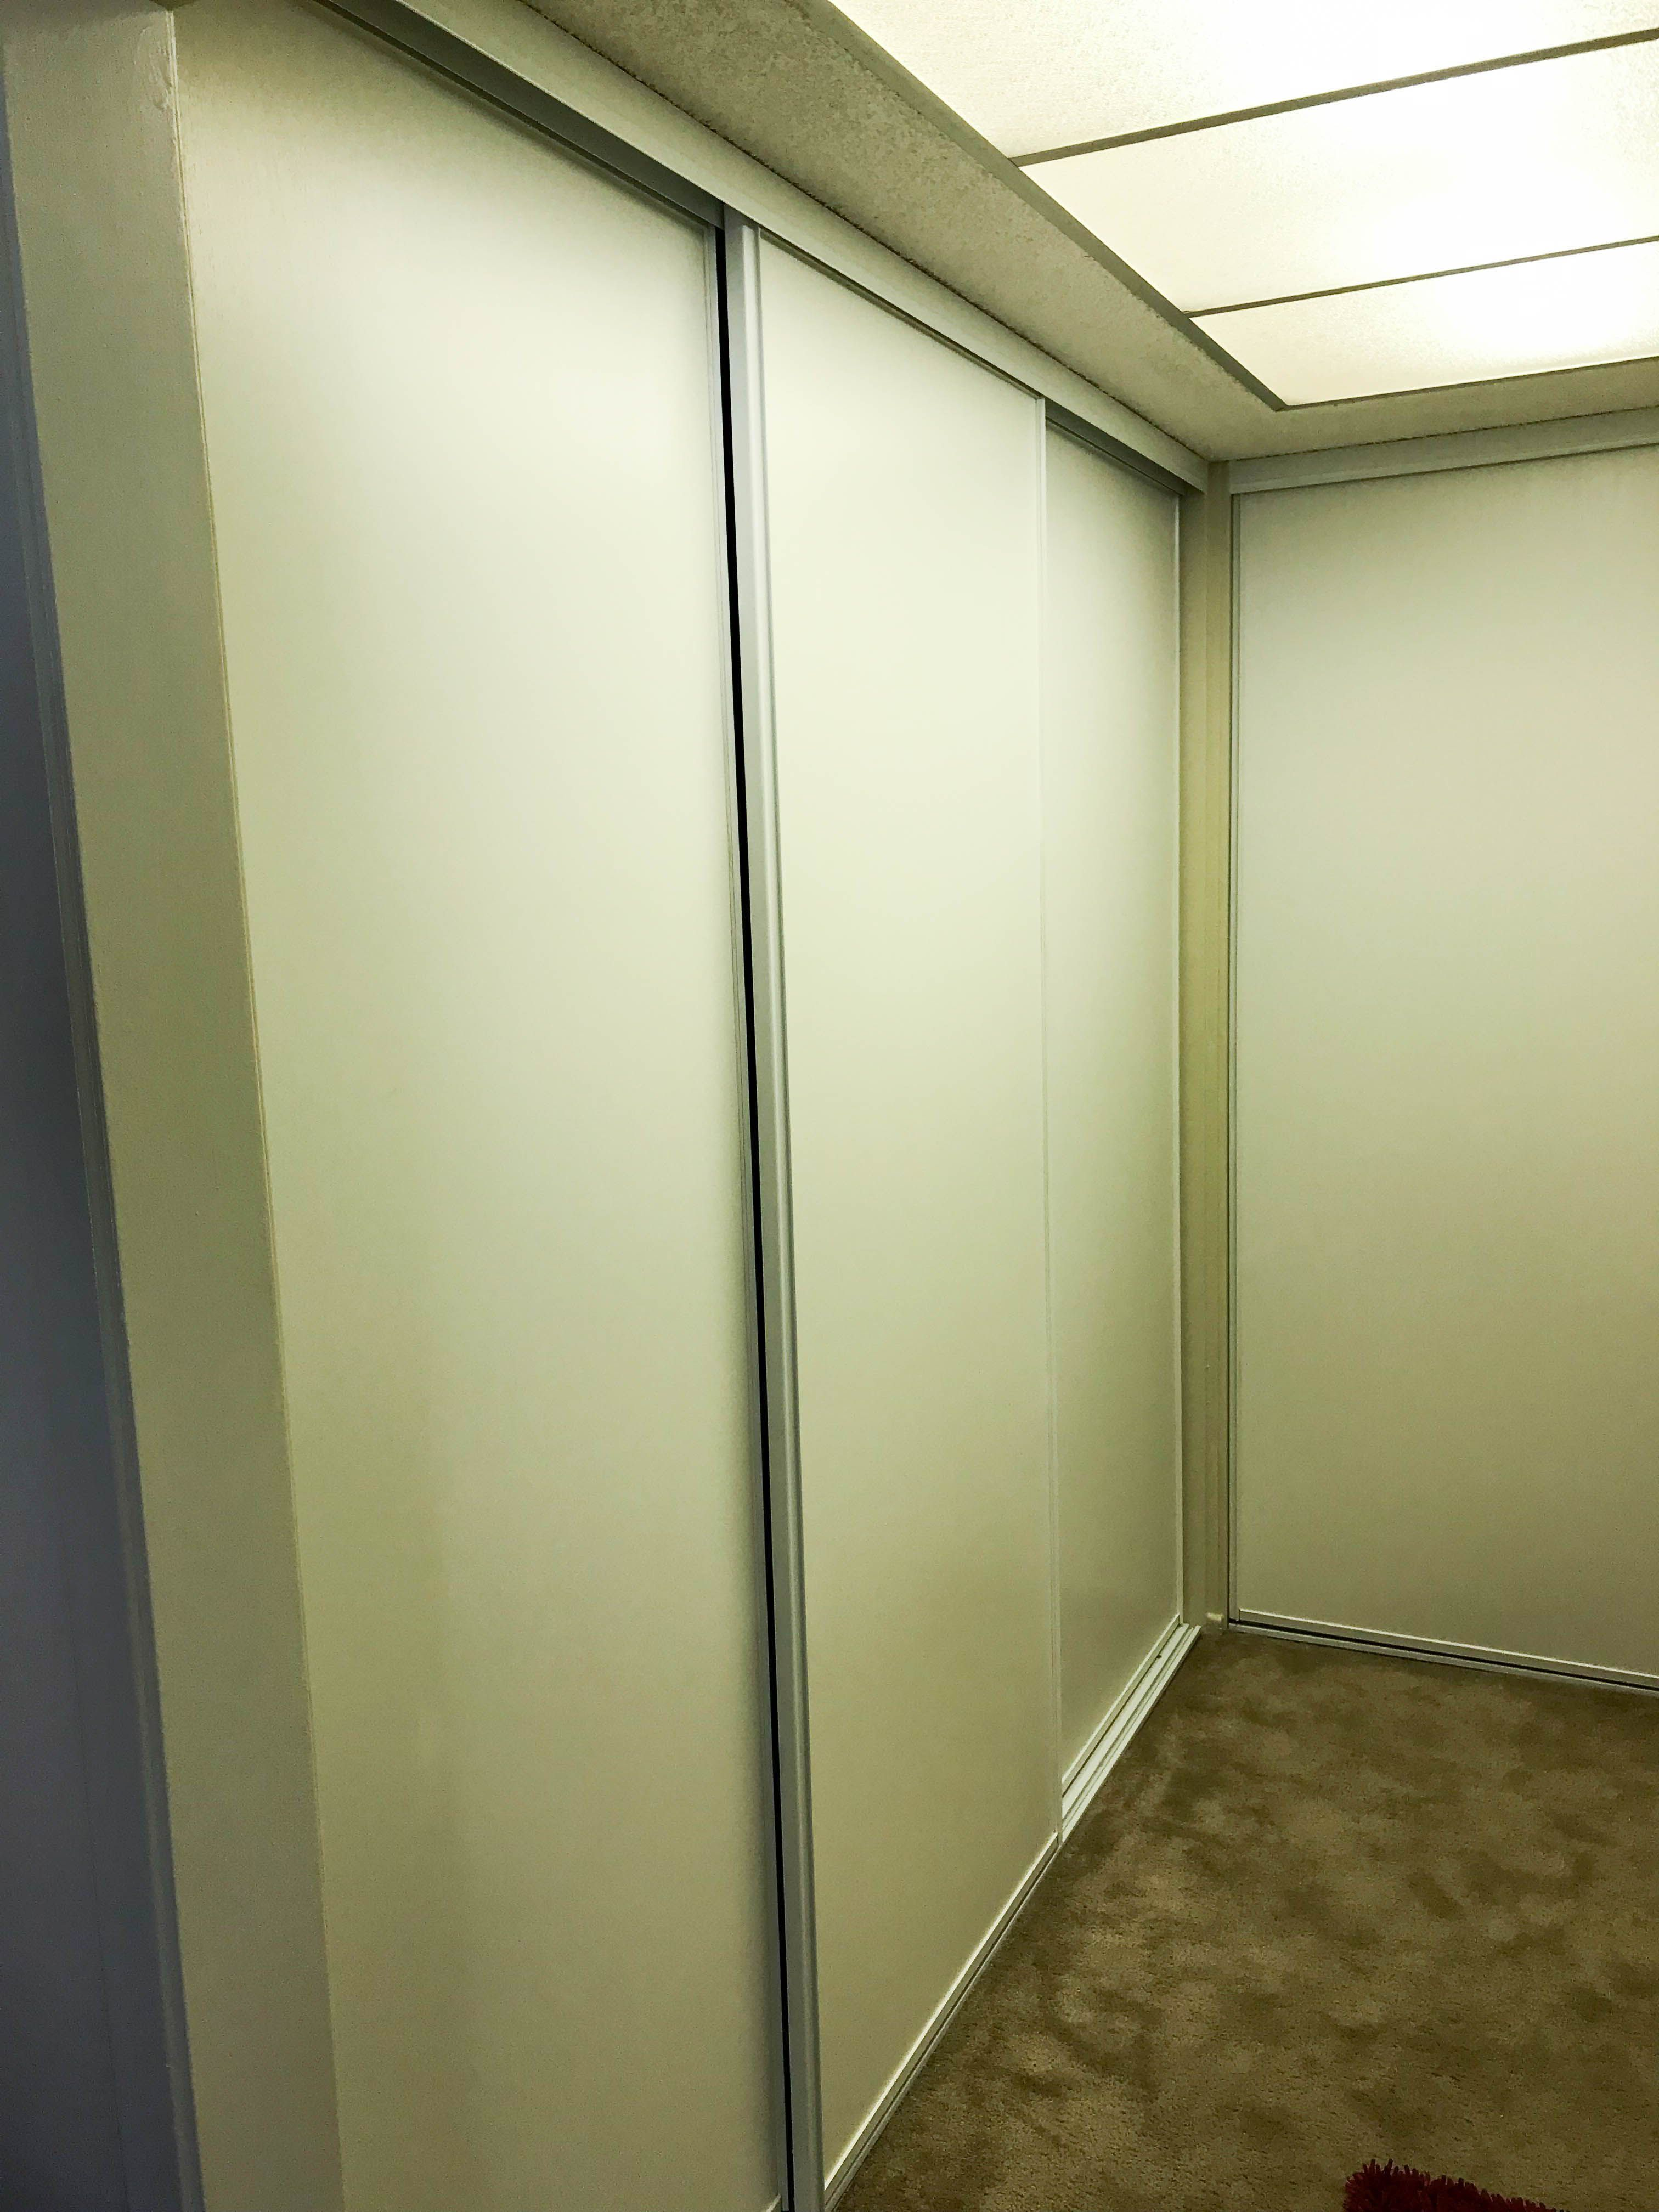 We Installed A 2 Track, 2 Panel Closet Door System As Well As A 3 Track, 3 Panel  Closet Door System With Vinyl Boards. If You Want To Replace Your Old ...